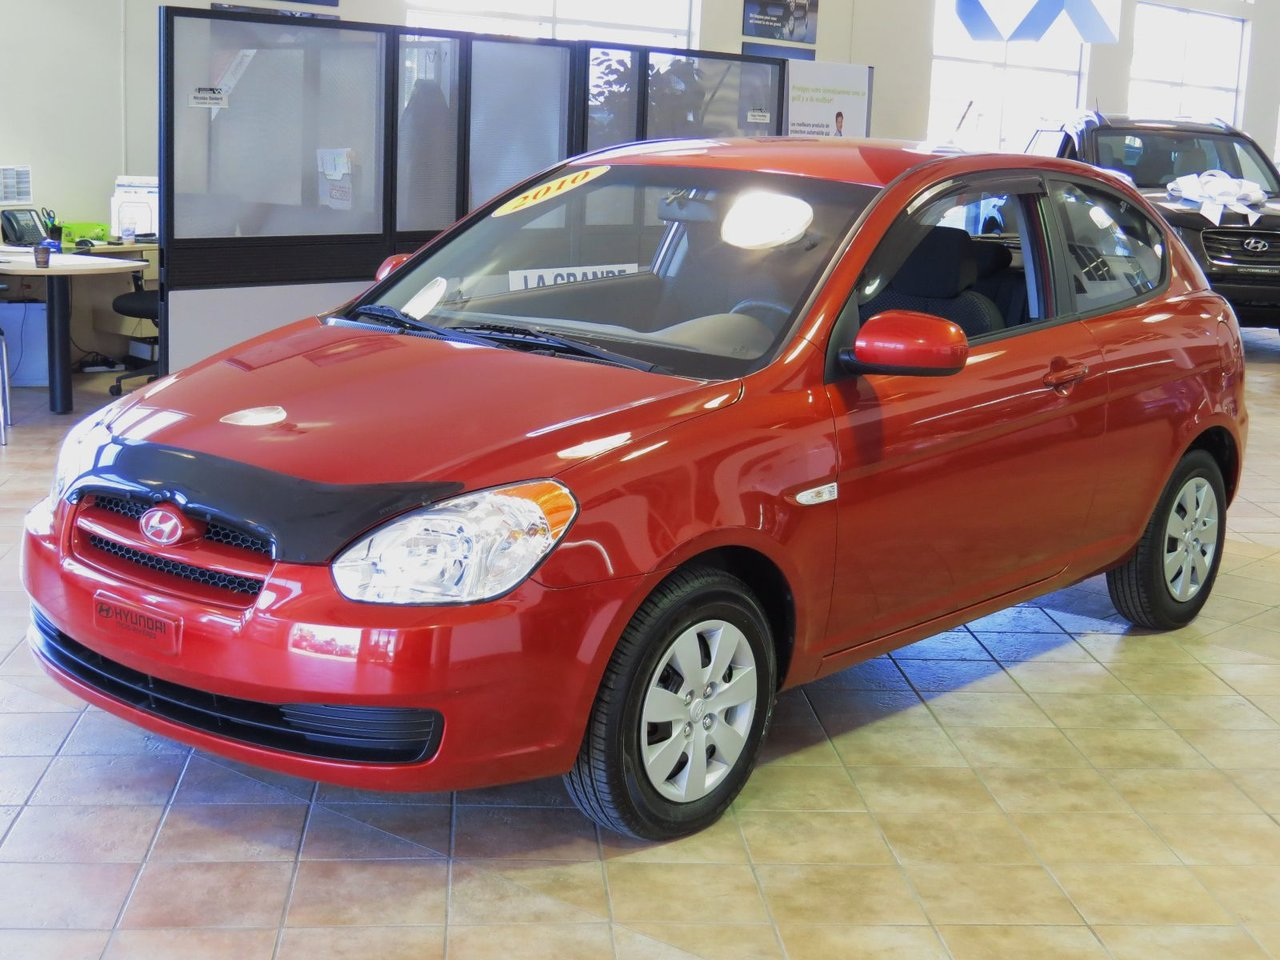 68 hyundai accent usag s vendre for Accent meuble trois rivieres